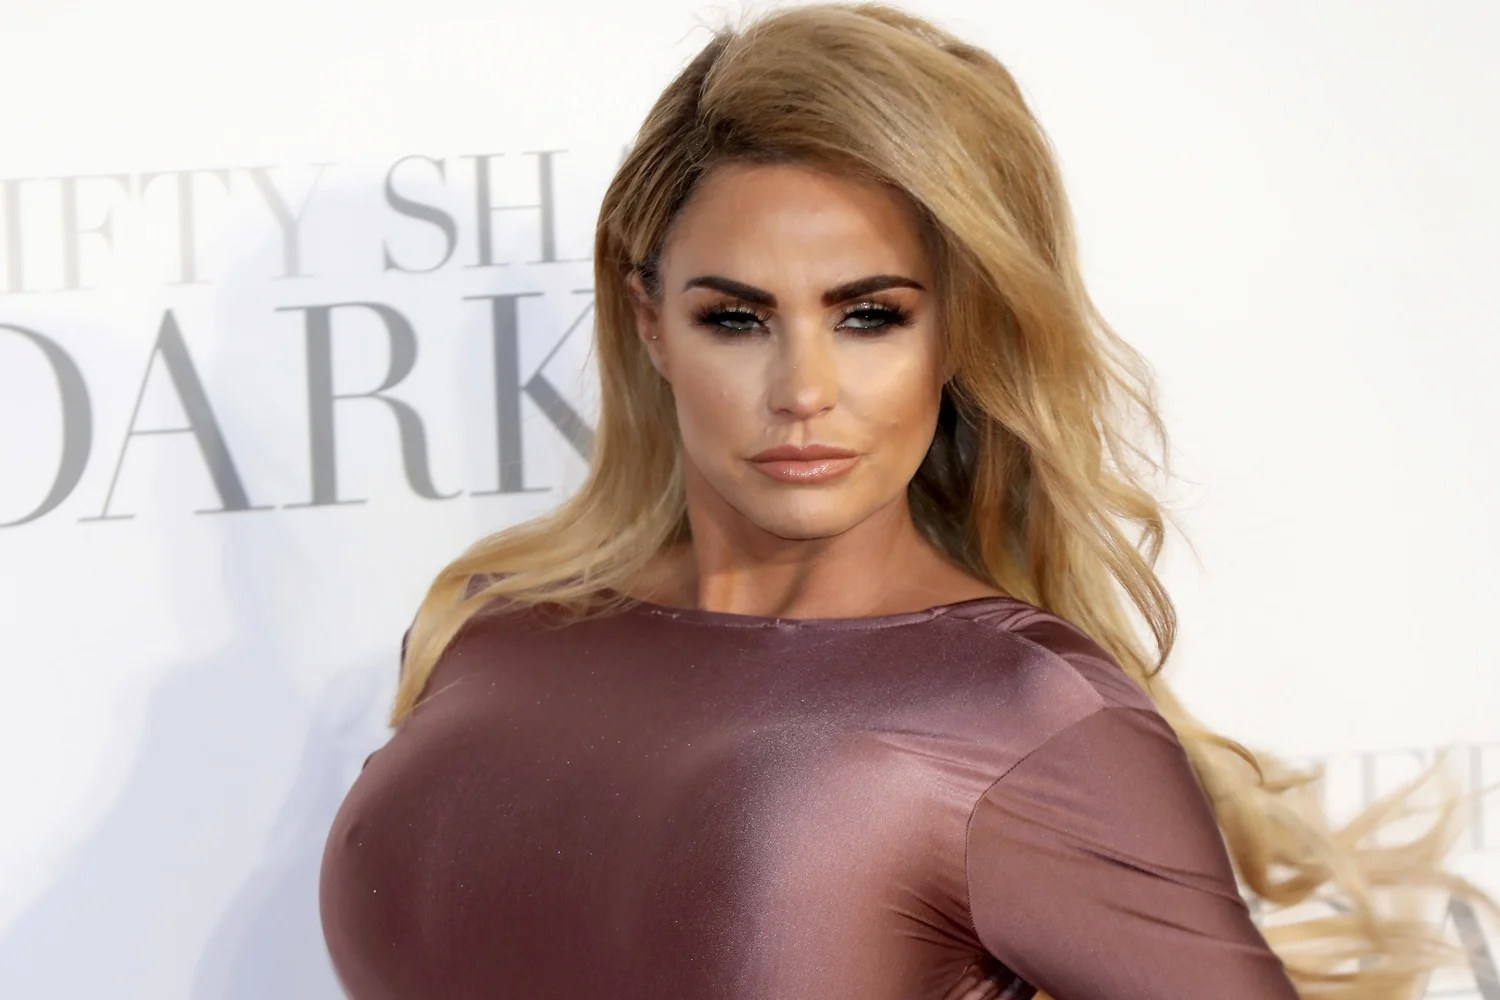 Katie Price Shuts Down Peter Andre Cheating Reports